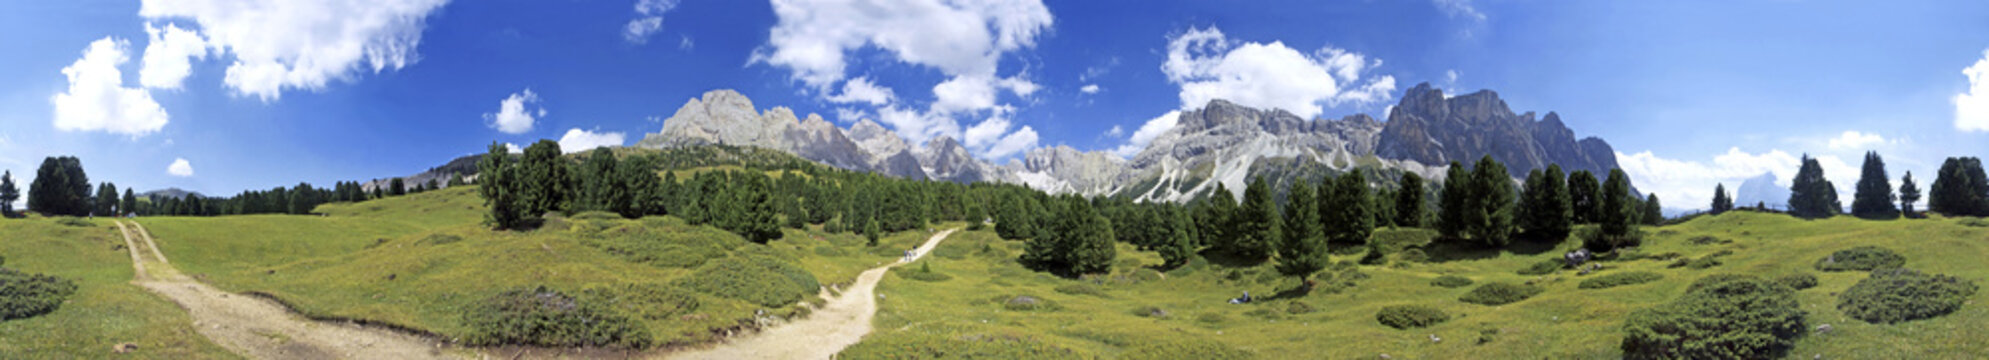 360 panorama Seceda, Gherdeina Valley, Italy, Europe